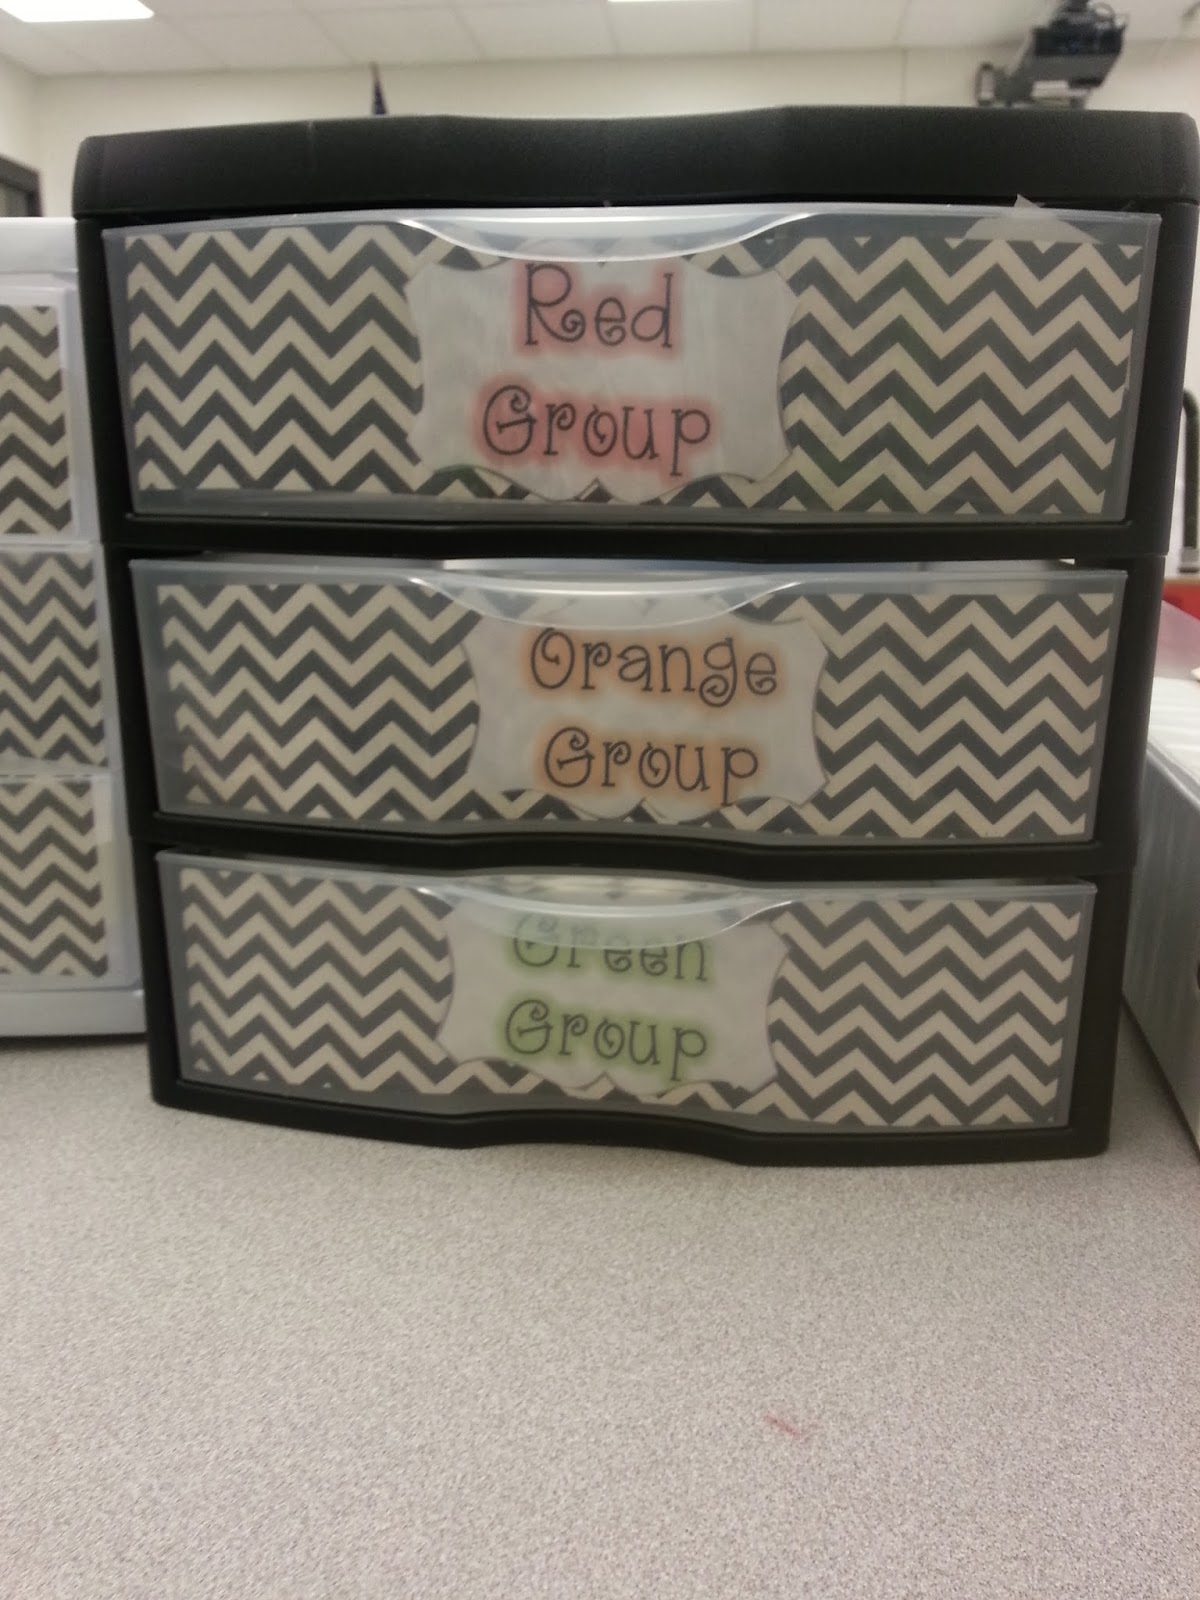 Classroom organization tips to organize your small group area